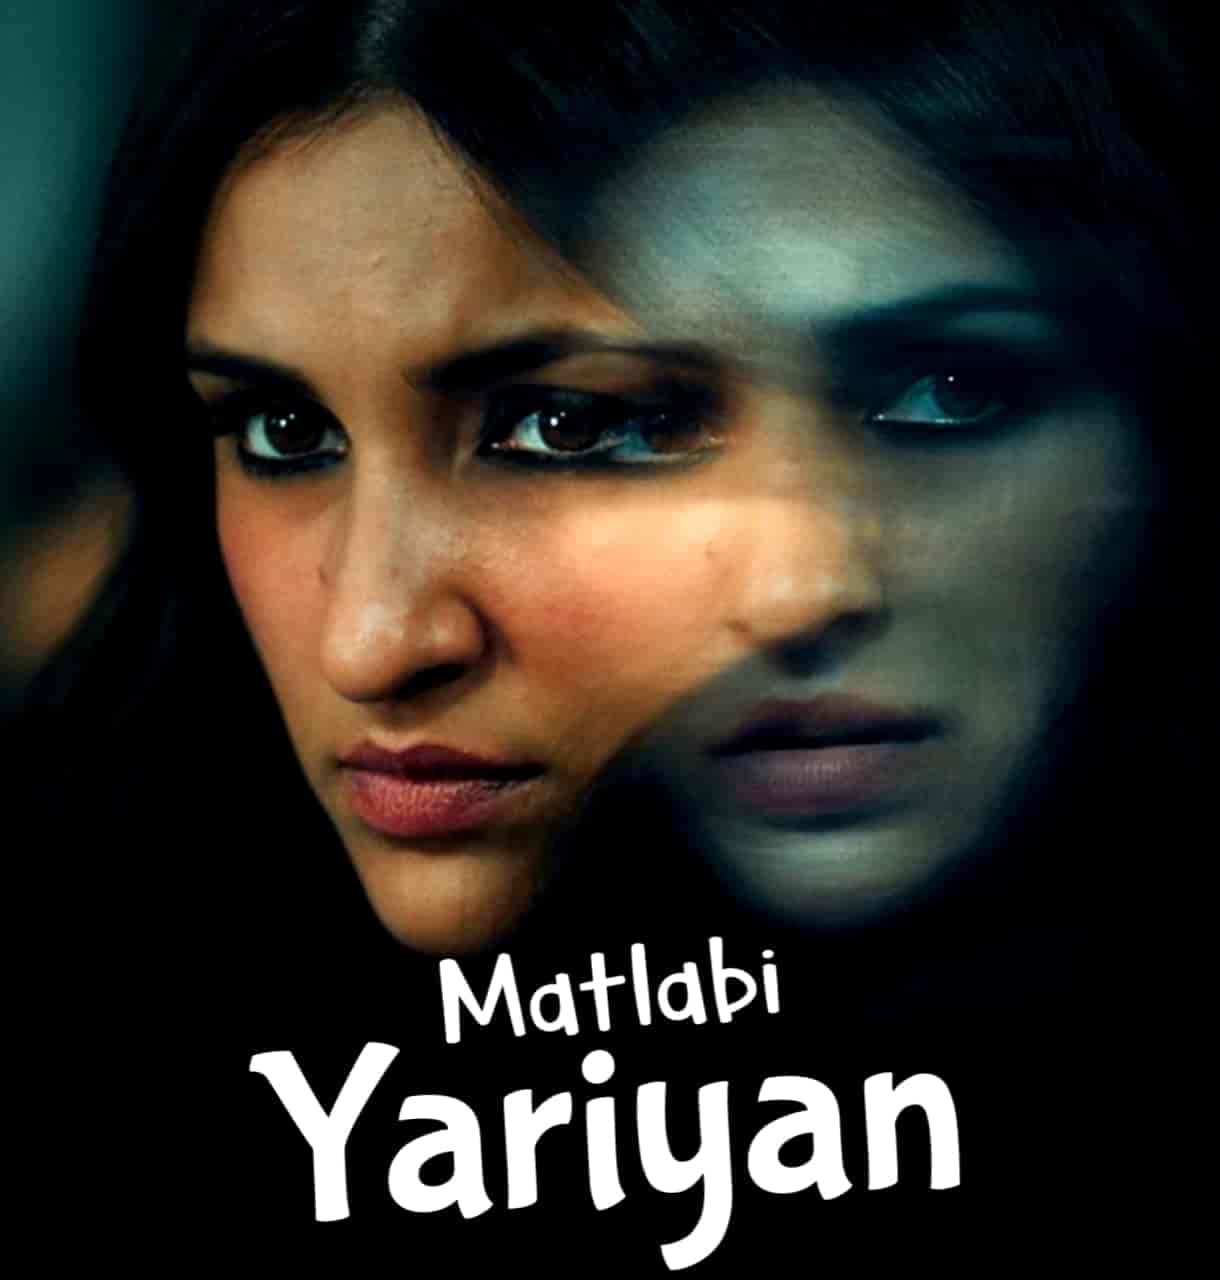 Matlabi Yariyan Hindi Song Image Features Parineeti Chopra